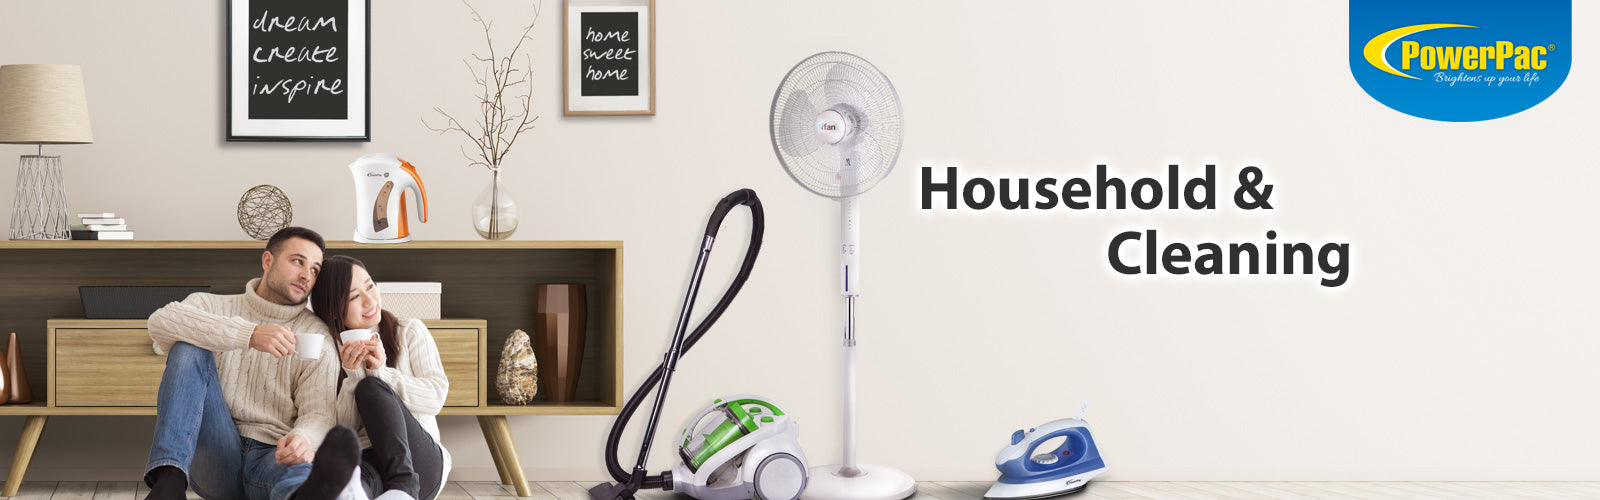 PowerPac Household Cleaning Solutions